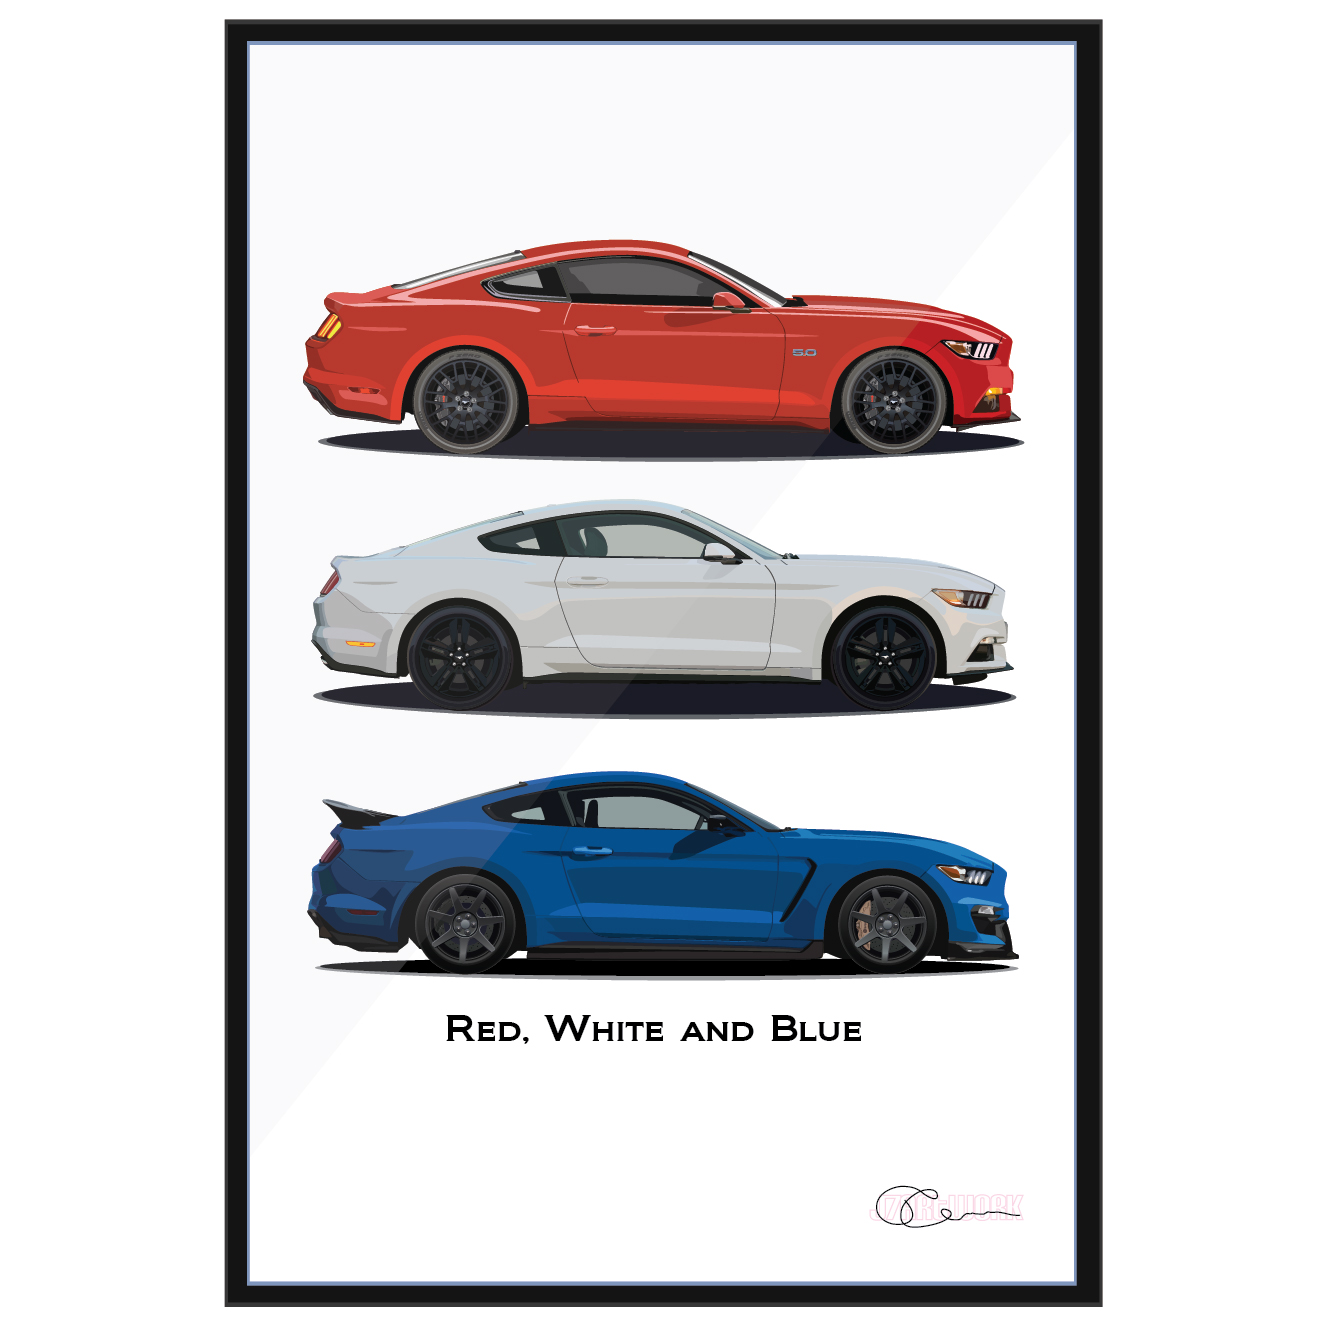 Red White And Blue S550 Mustangs J7artwork